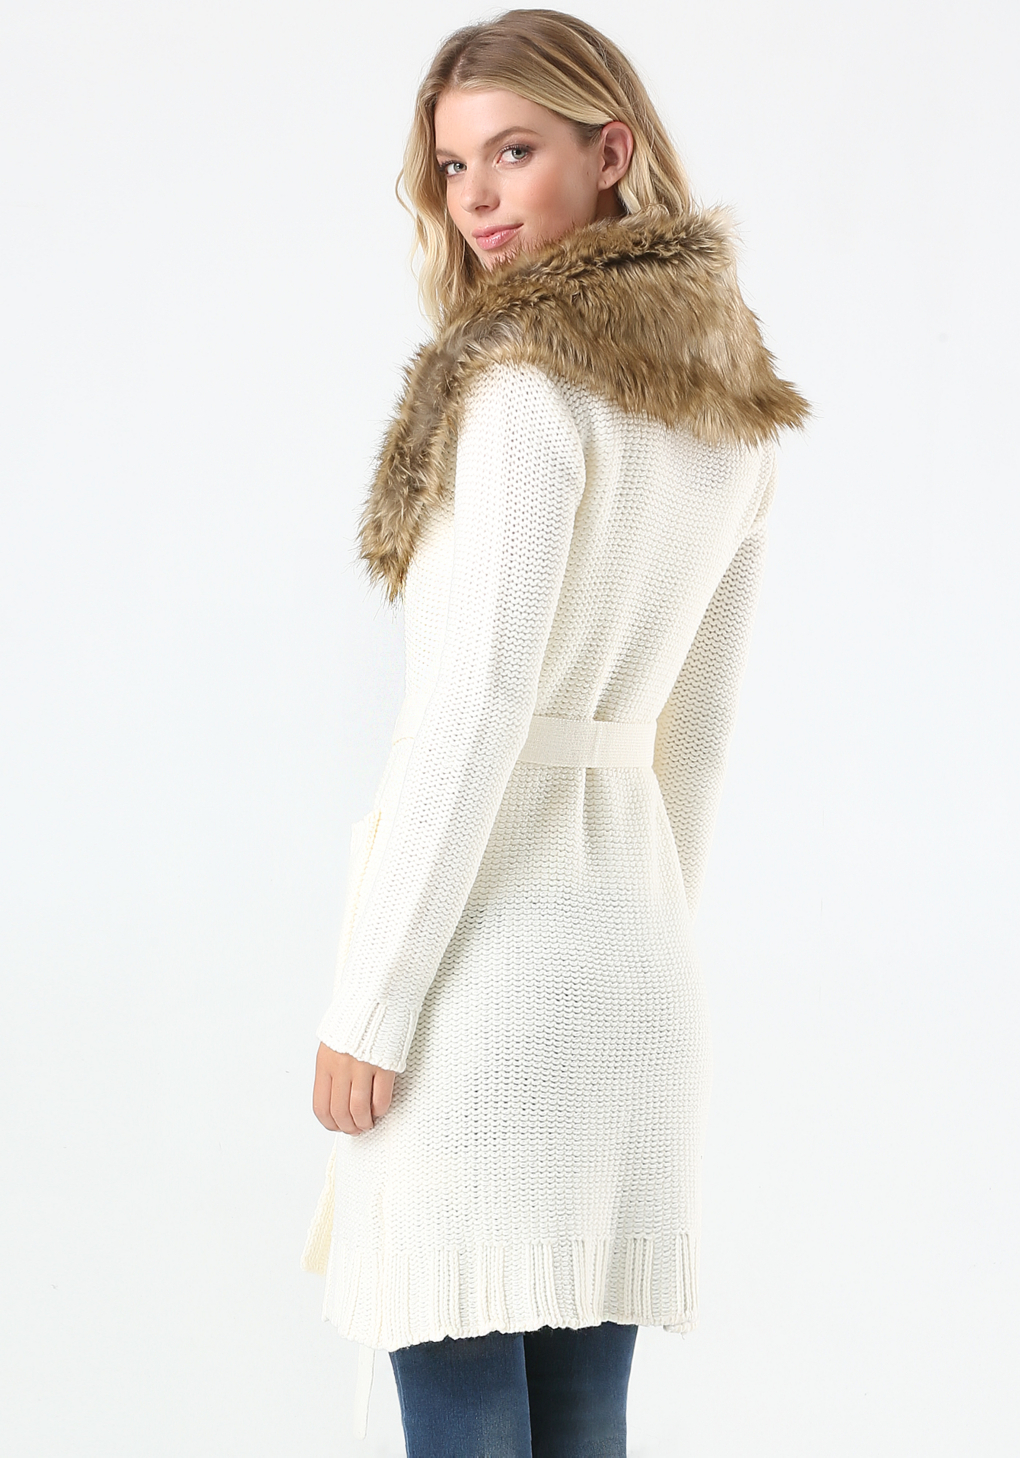 Bebe Faux Fur Trim Sweater Coat in White | Lyst